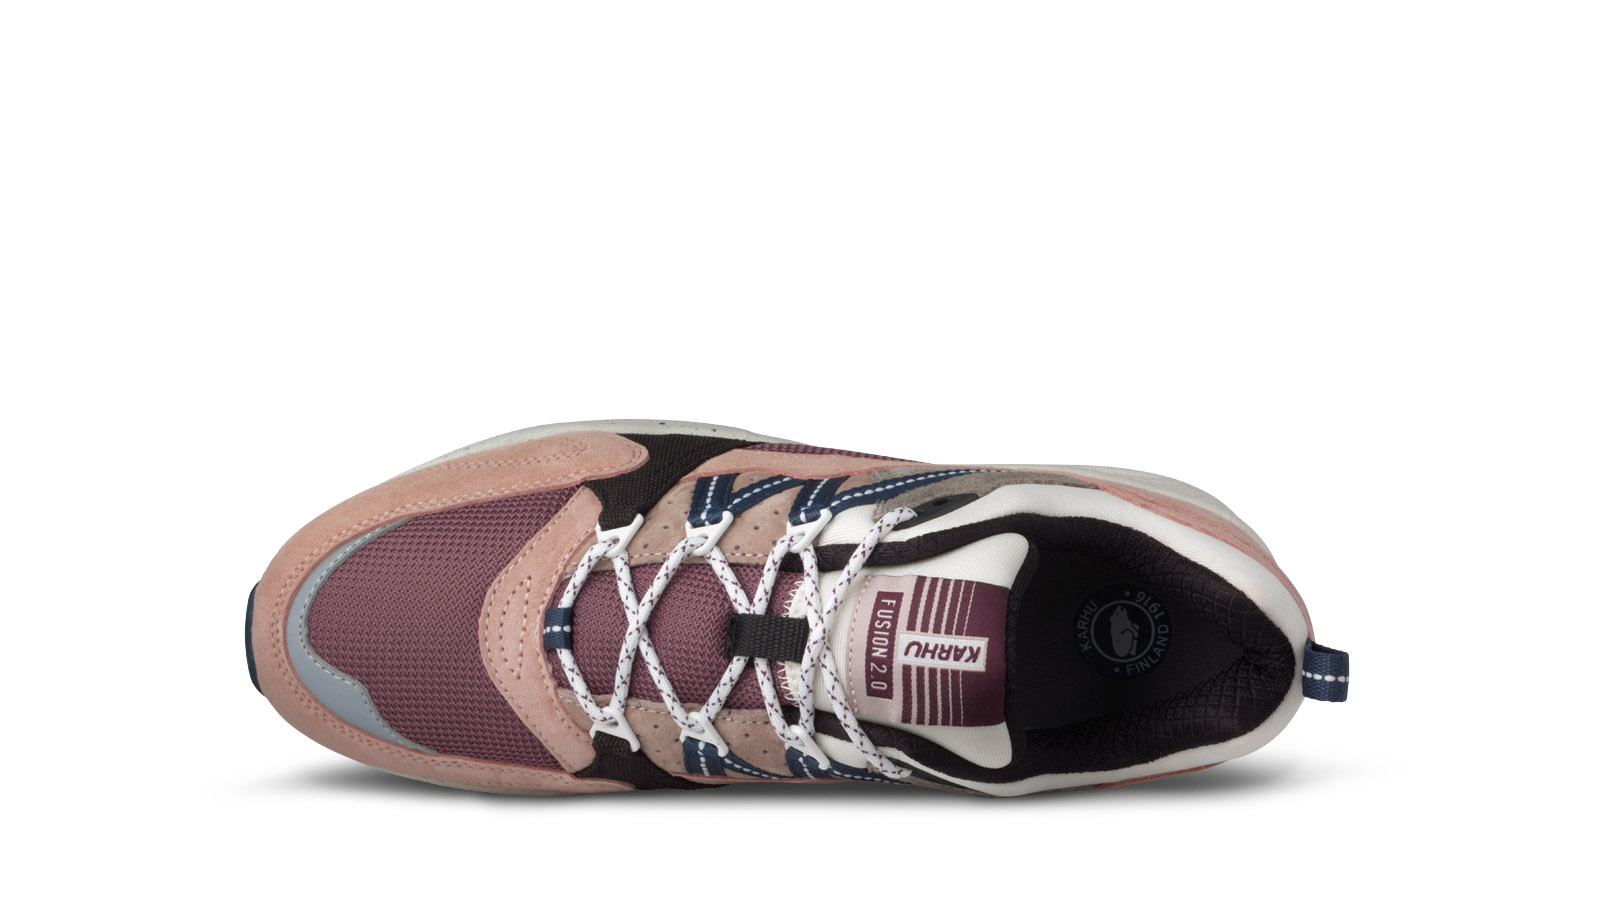 karhu-fusion-2-0-color-of-mood-misty-rose-reflecting-pond-femme-upper